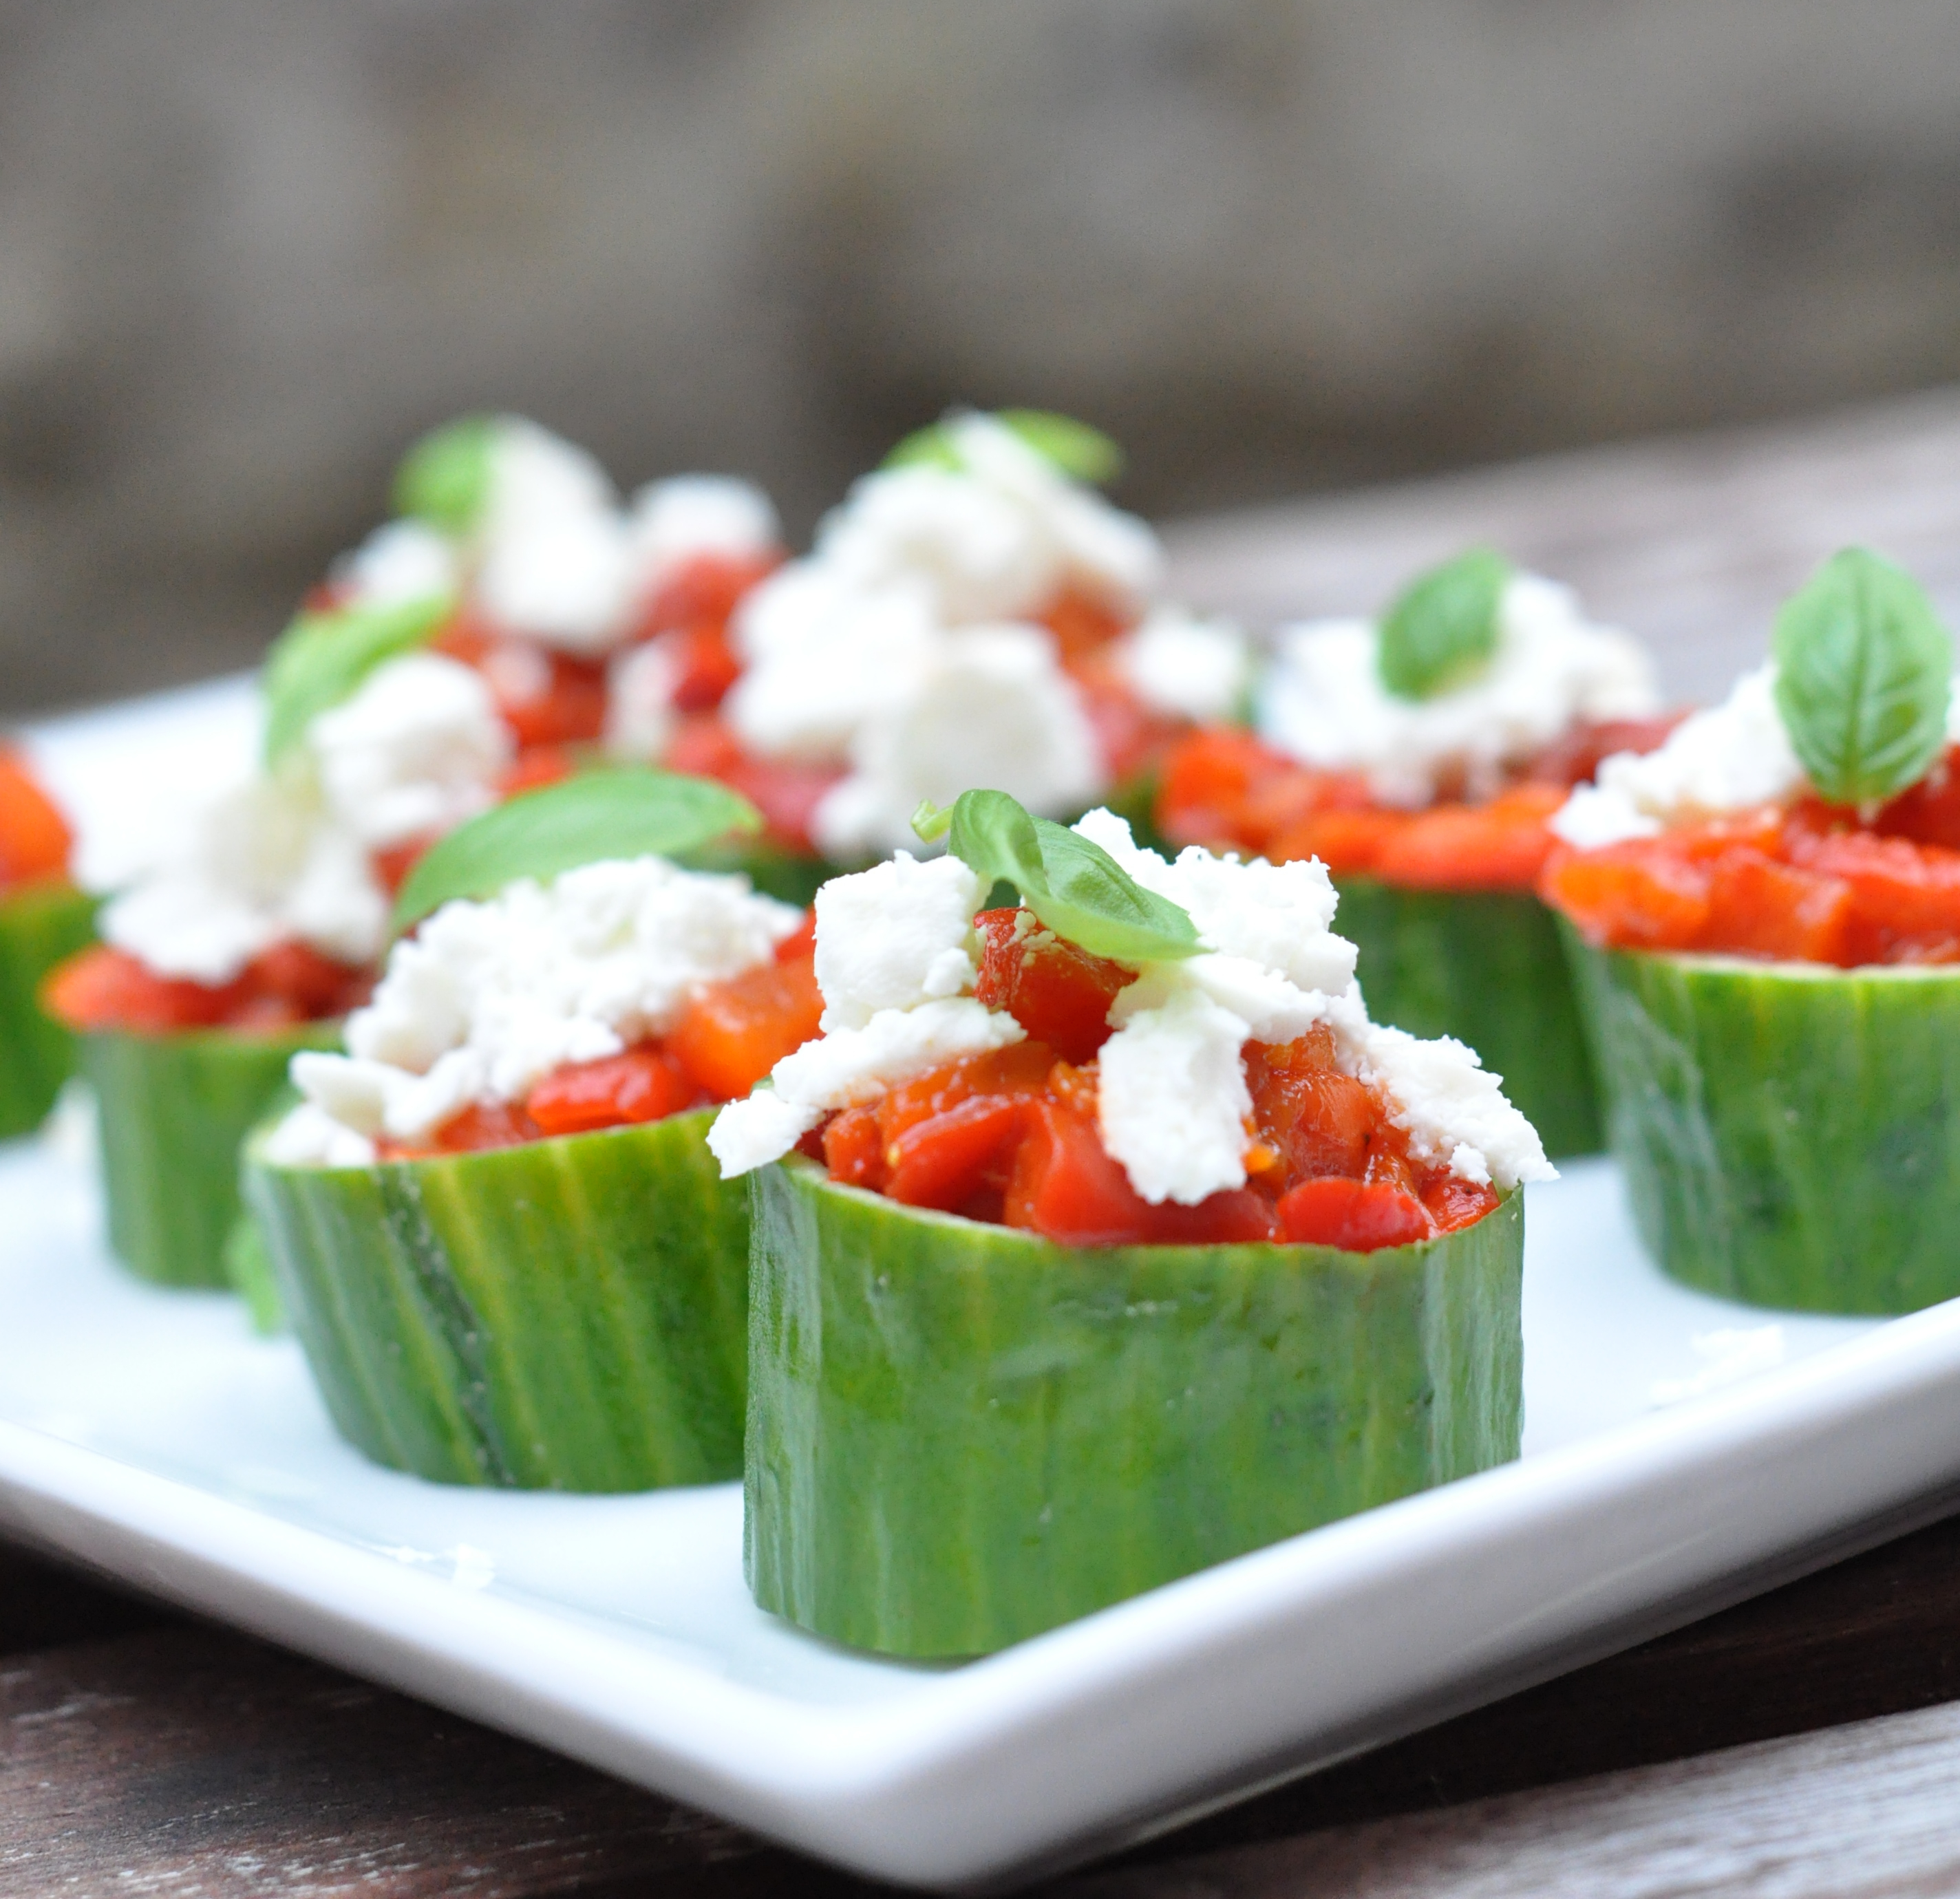 Roasted pepper tartar in a cucumber bowl